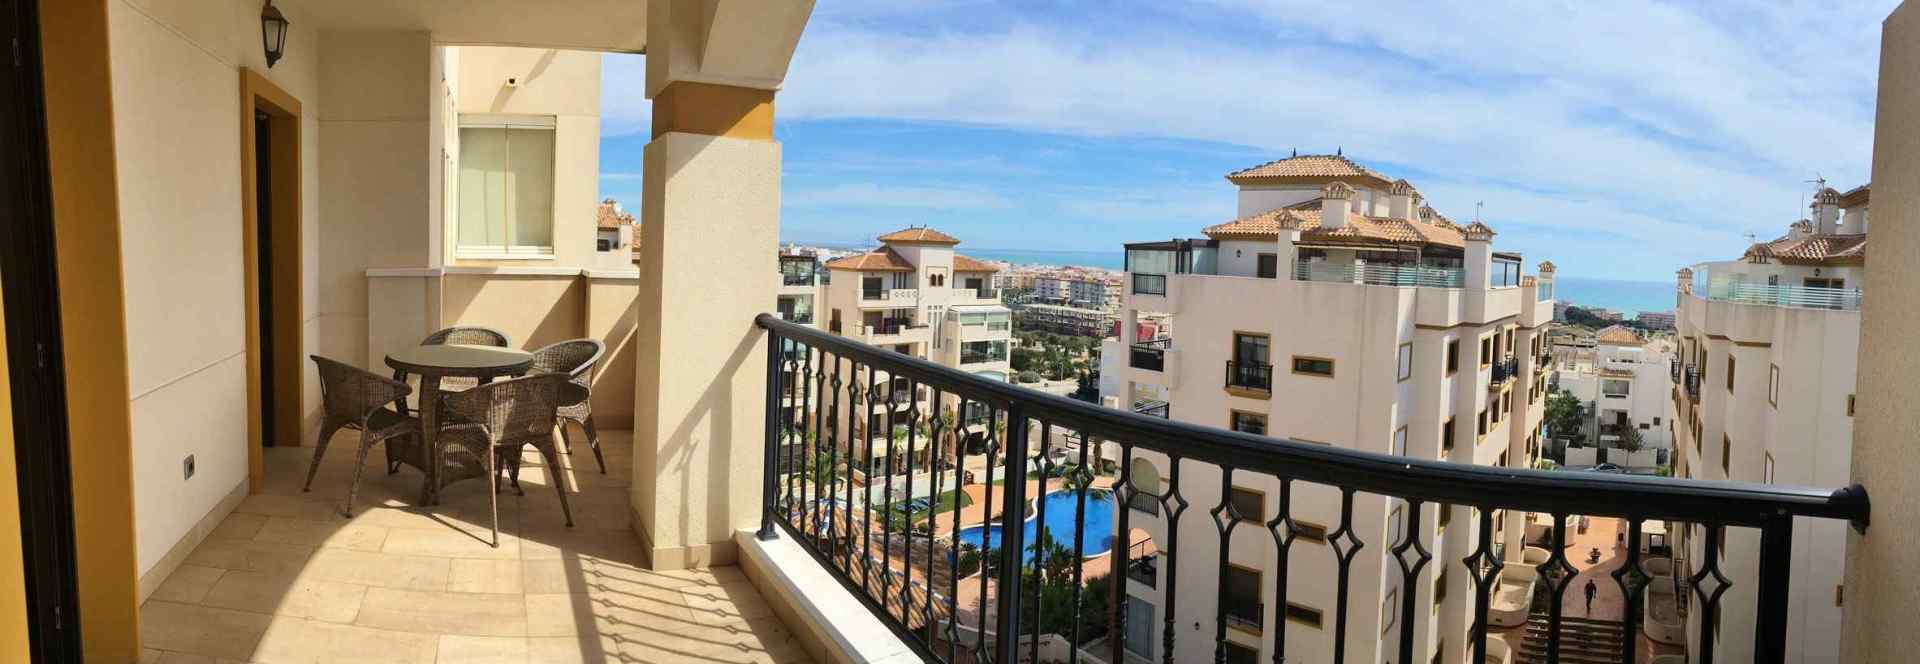 1135 Modern Apartment in Guardamar with Sea Views (1)